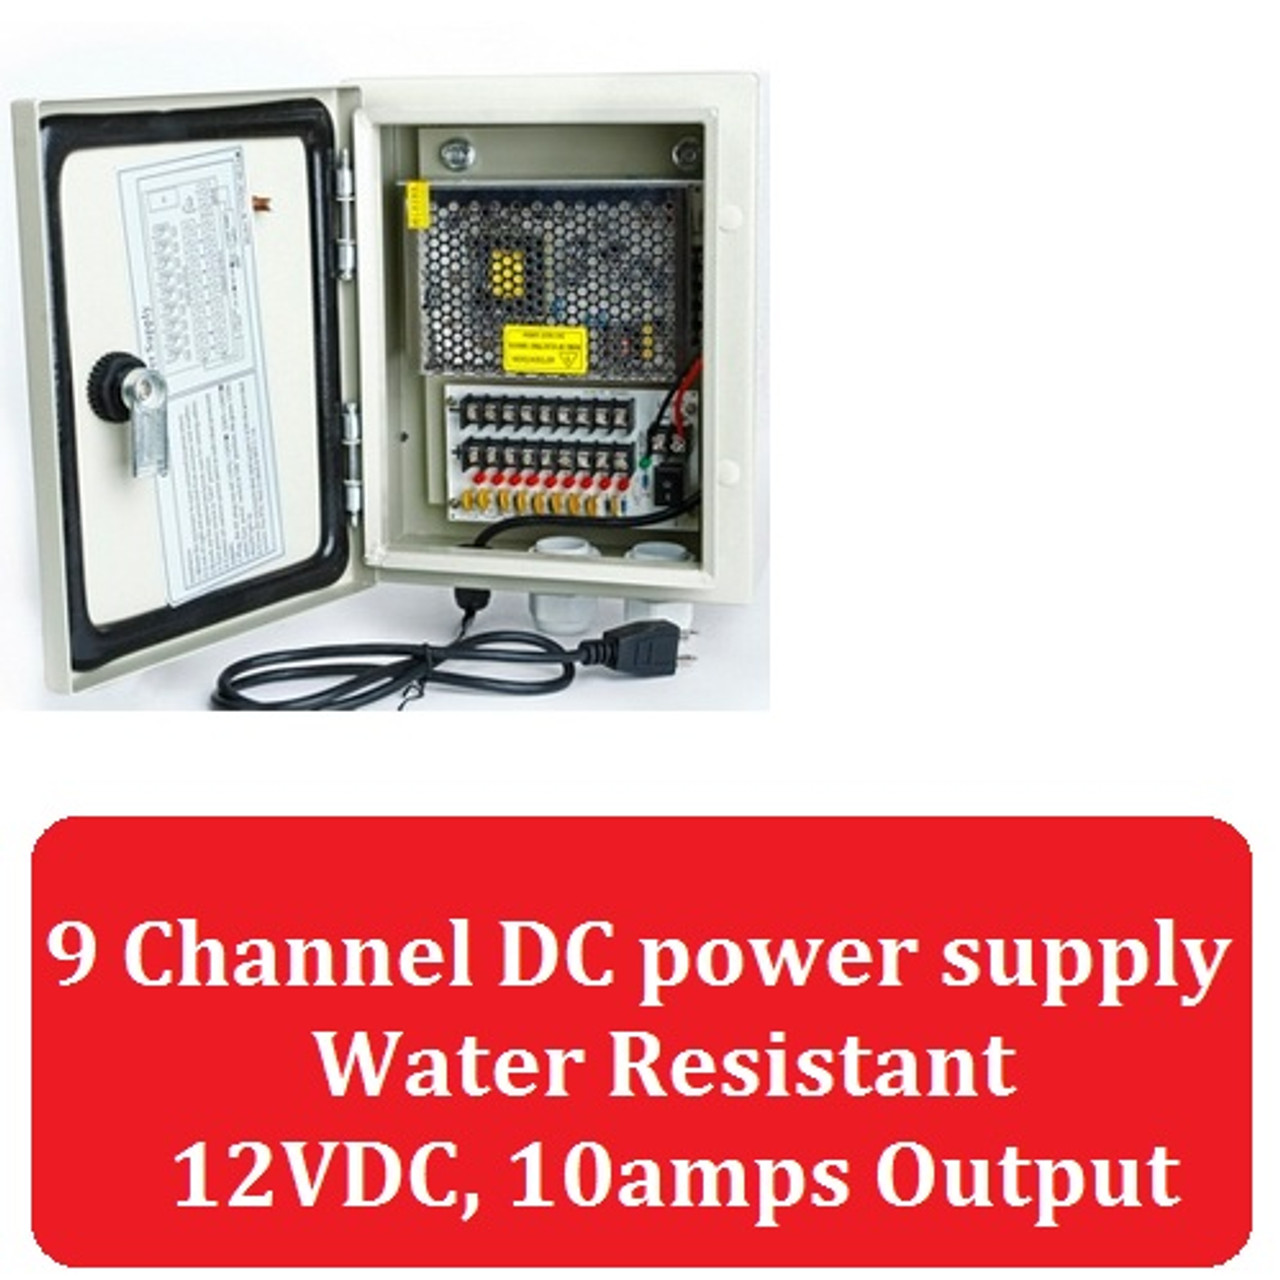 Metal Waterproof Security Power Supply Switch Box for CCTV Security Camera